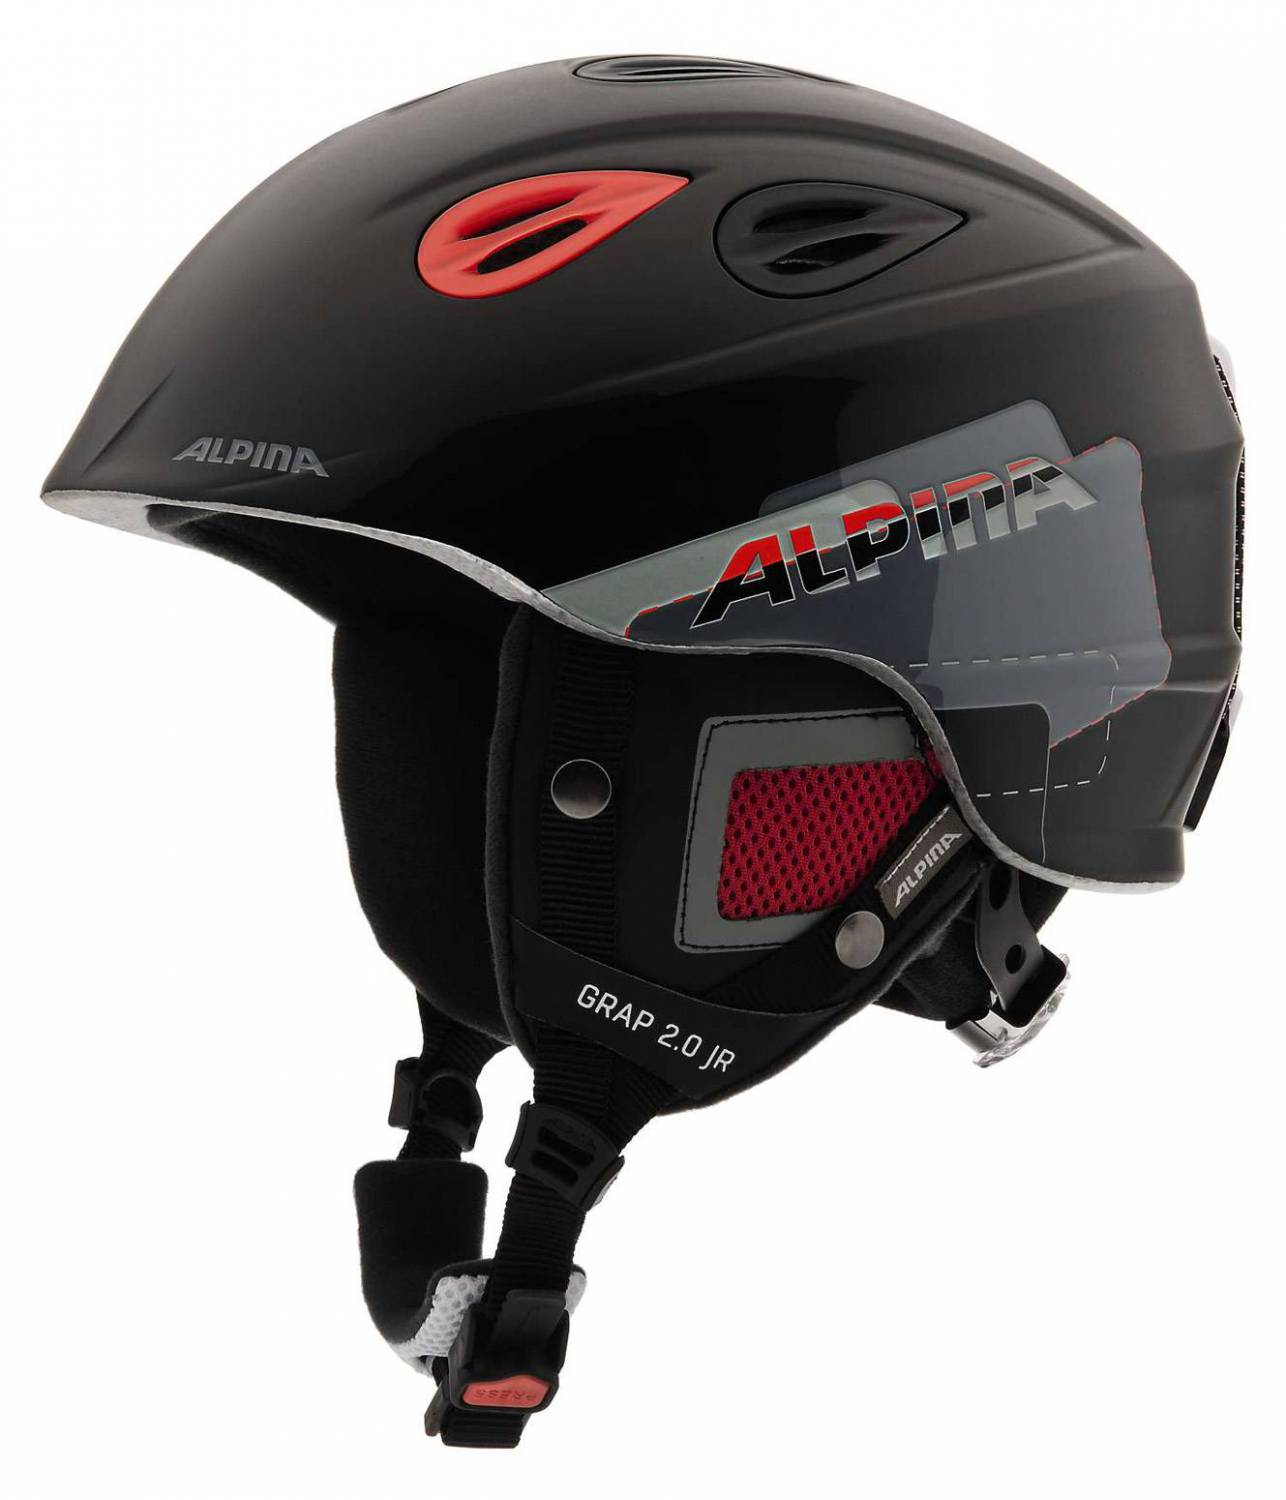 Alpina Grap 2.0 Junior Kinderskihelm (Größe: 51-54 cm, 31 black/red) Sale Angebote Welzow